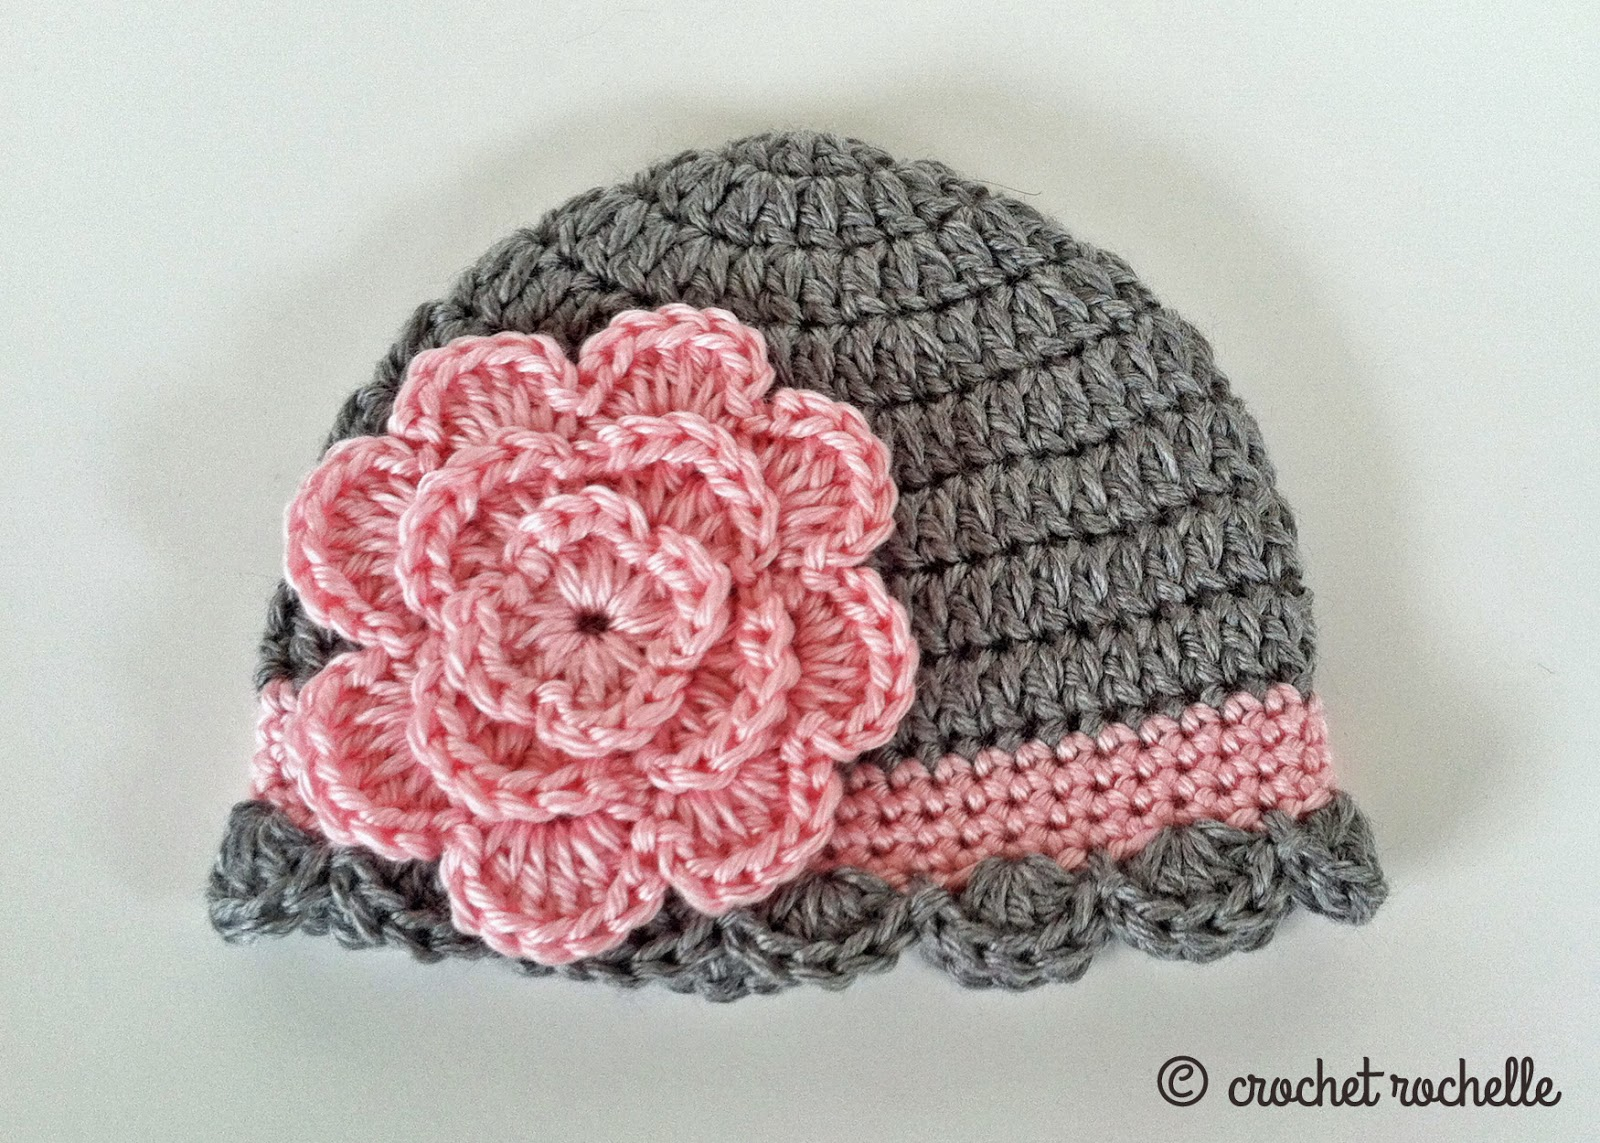 Crochet Baby Hat Patterns 0 3 Months : Crochet Rochelle: Pretty Baby Beanie